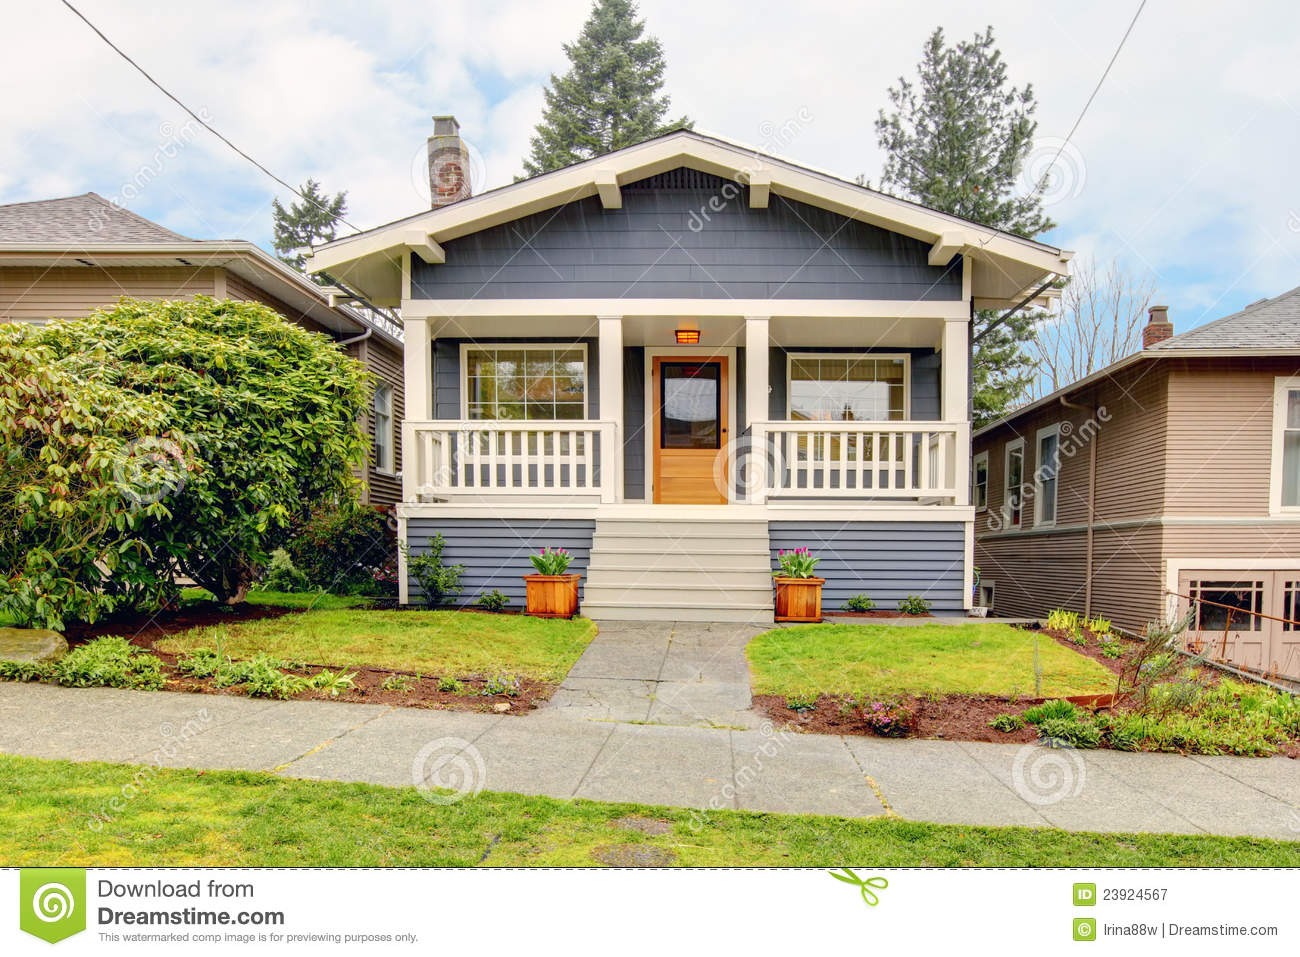 Small simple blue grey craftsman style house with white porch